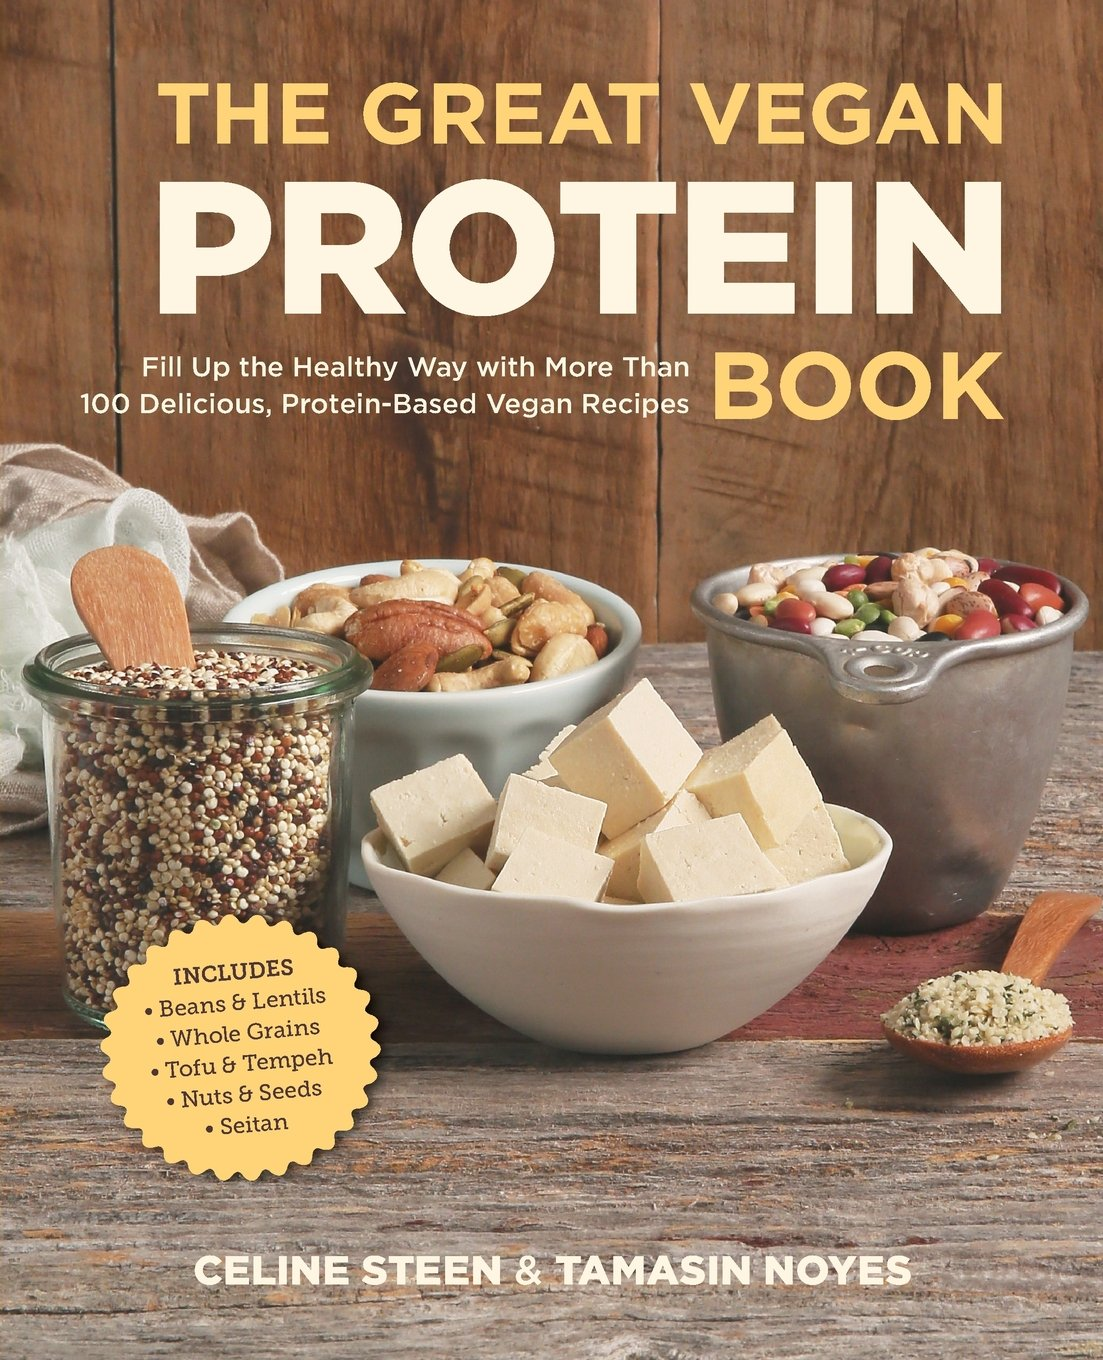 Download The Great Vegan Protein Book: Fill Up the Healthy Way with More than 100 Delicious Protein-Based Vegan Recipes - Includes - Beans & Lentils - Plants - Tofu & Tempeh - Nuts - Quinoa (Great Vegan Book) pdf epub